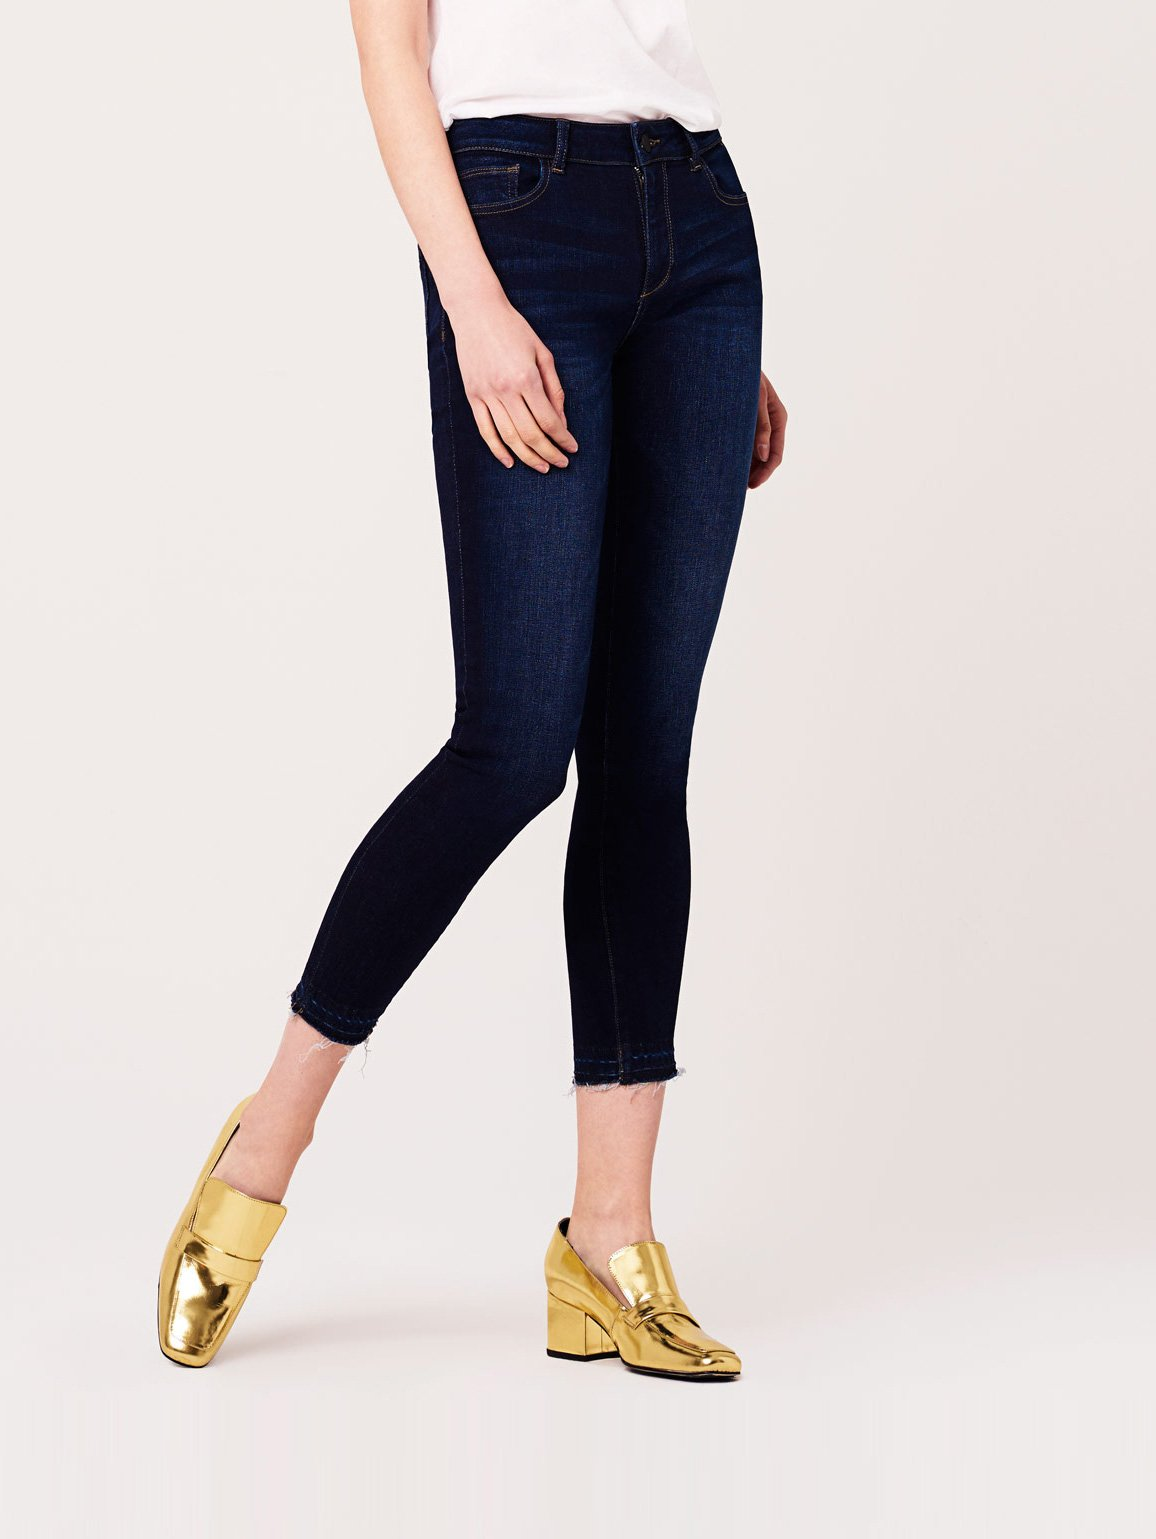 Women - Coco Curvy Ankle Skinny Stoney - DL1961